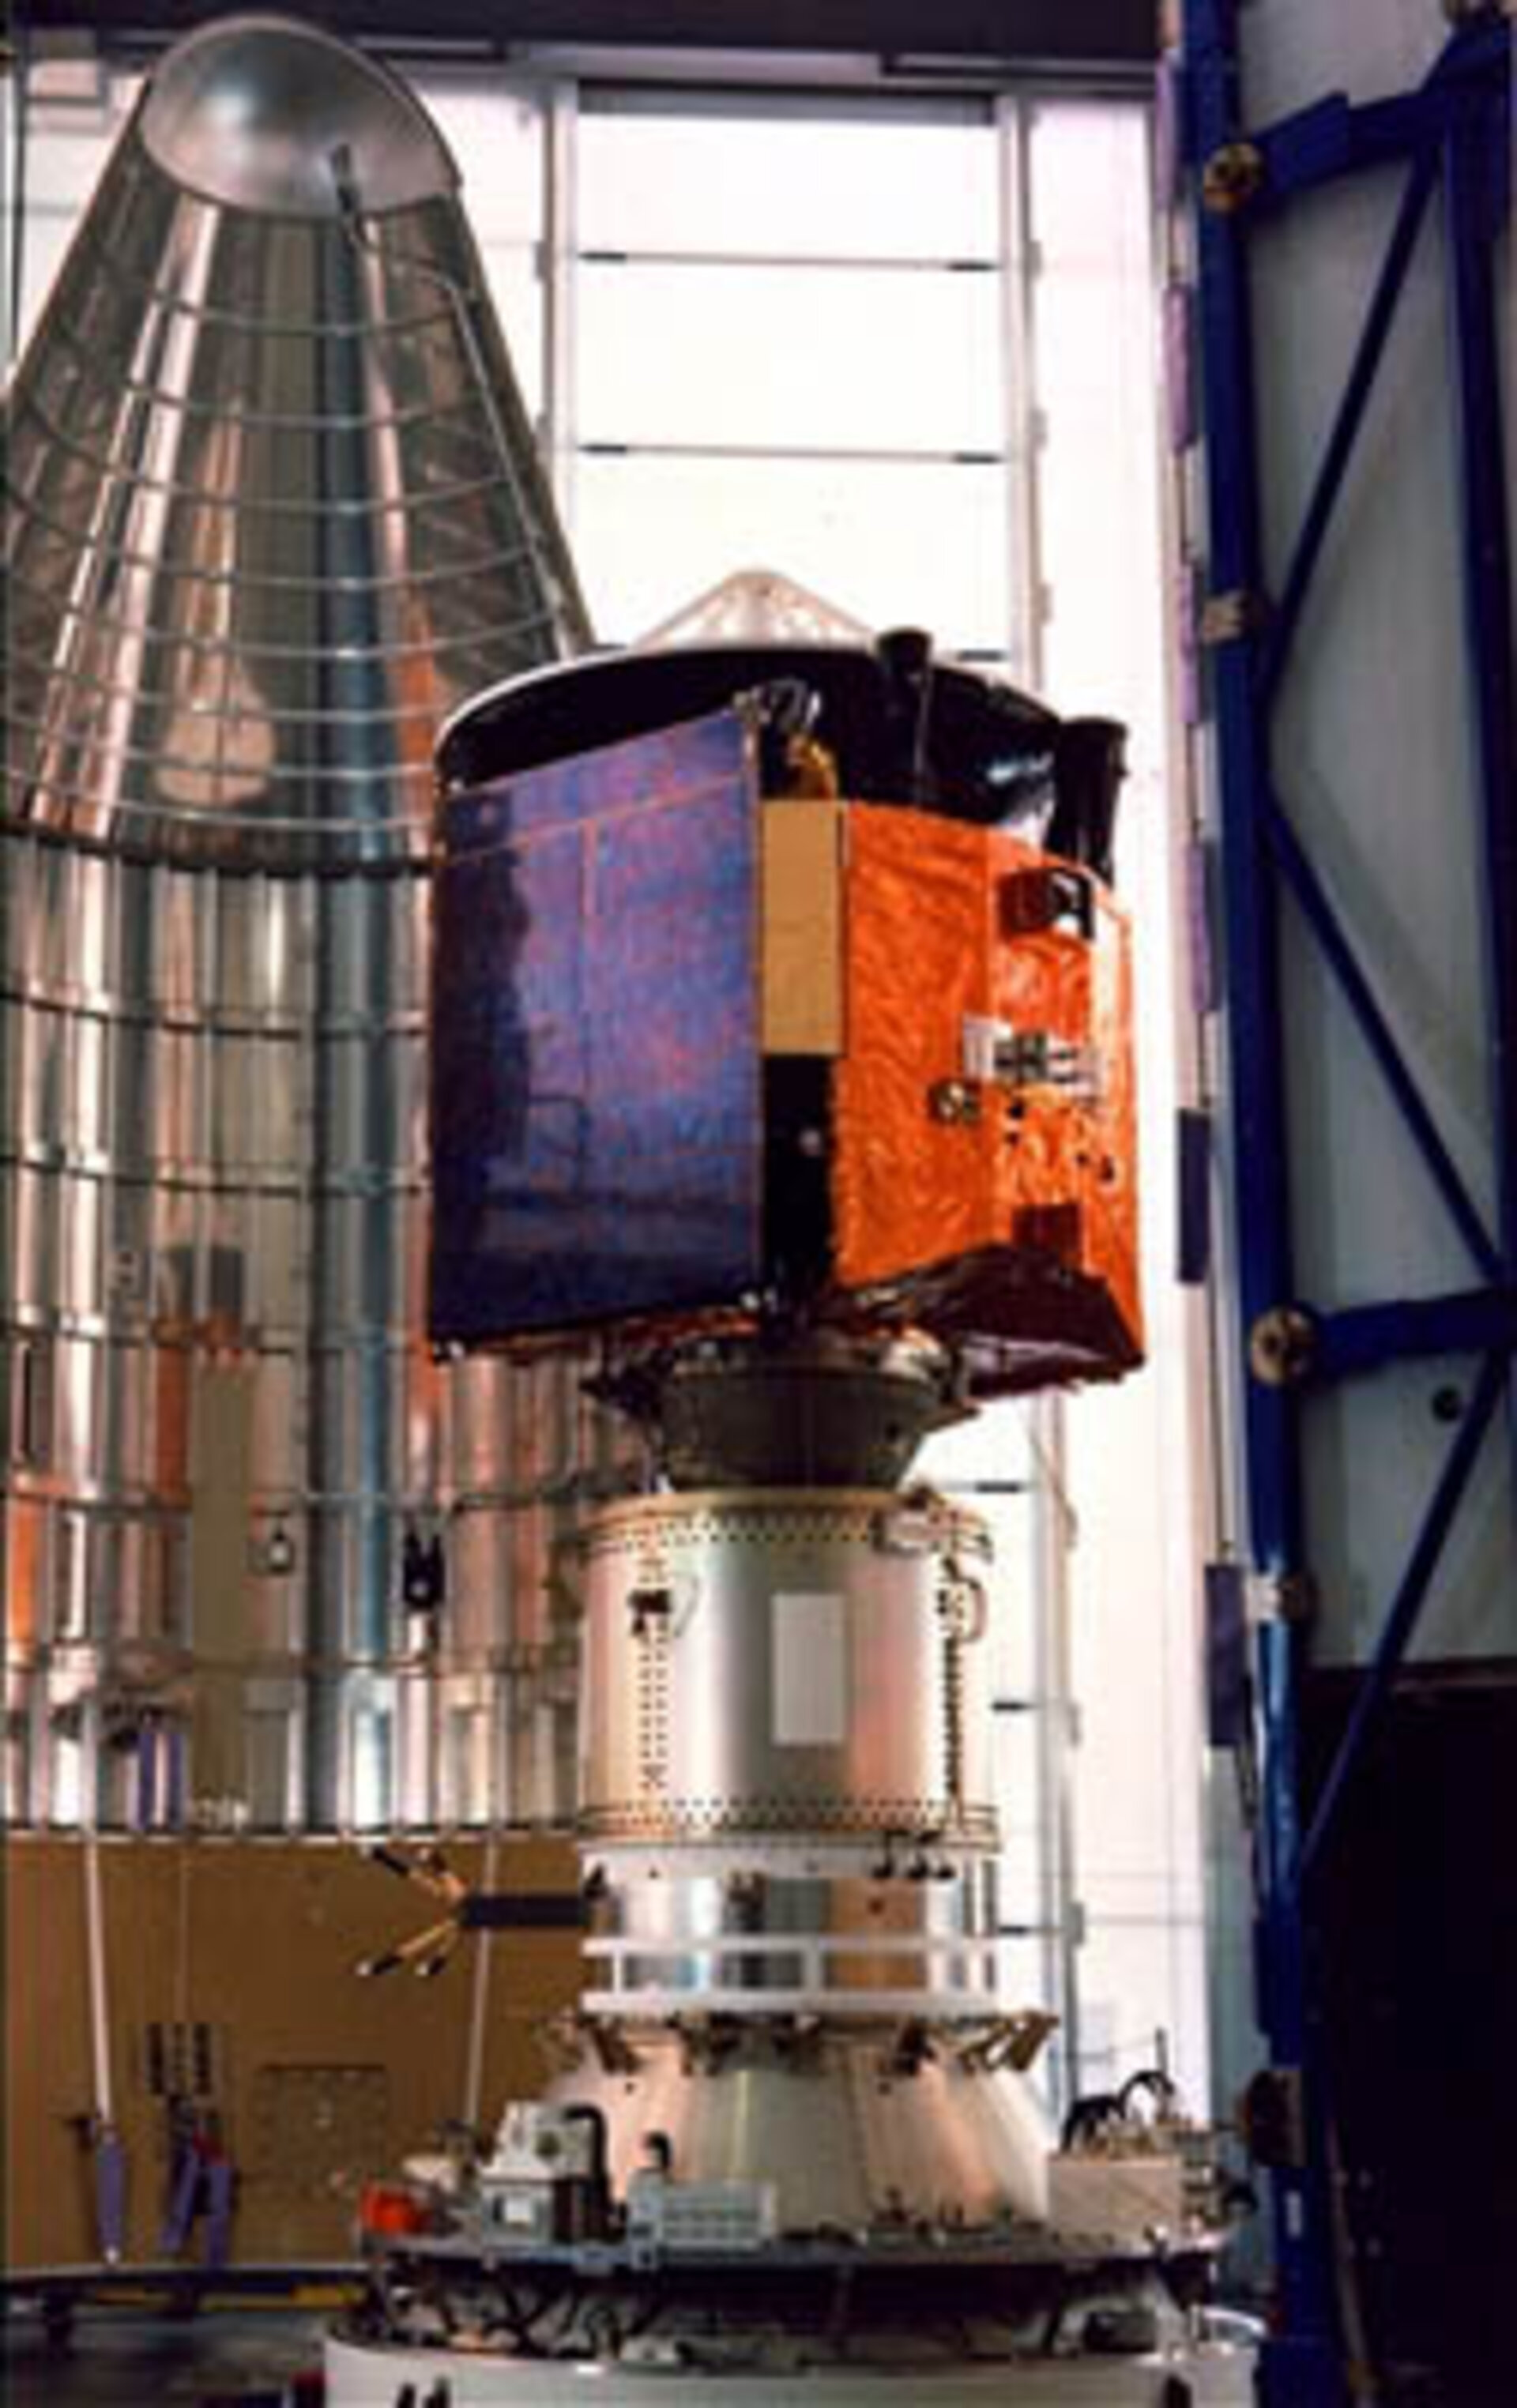 Marecs-A awaits encapsulation for its launch in 1981